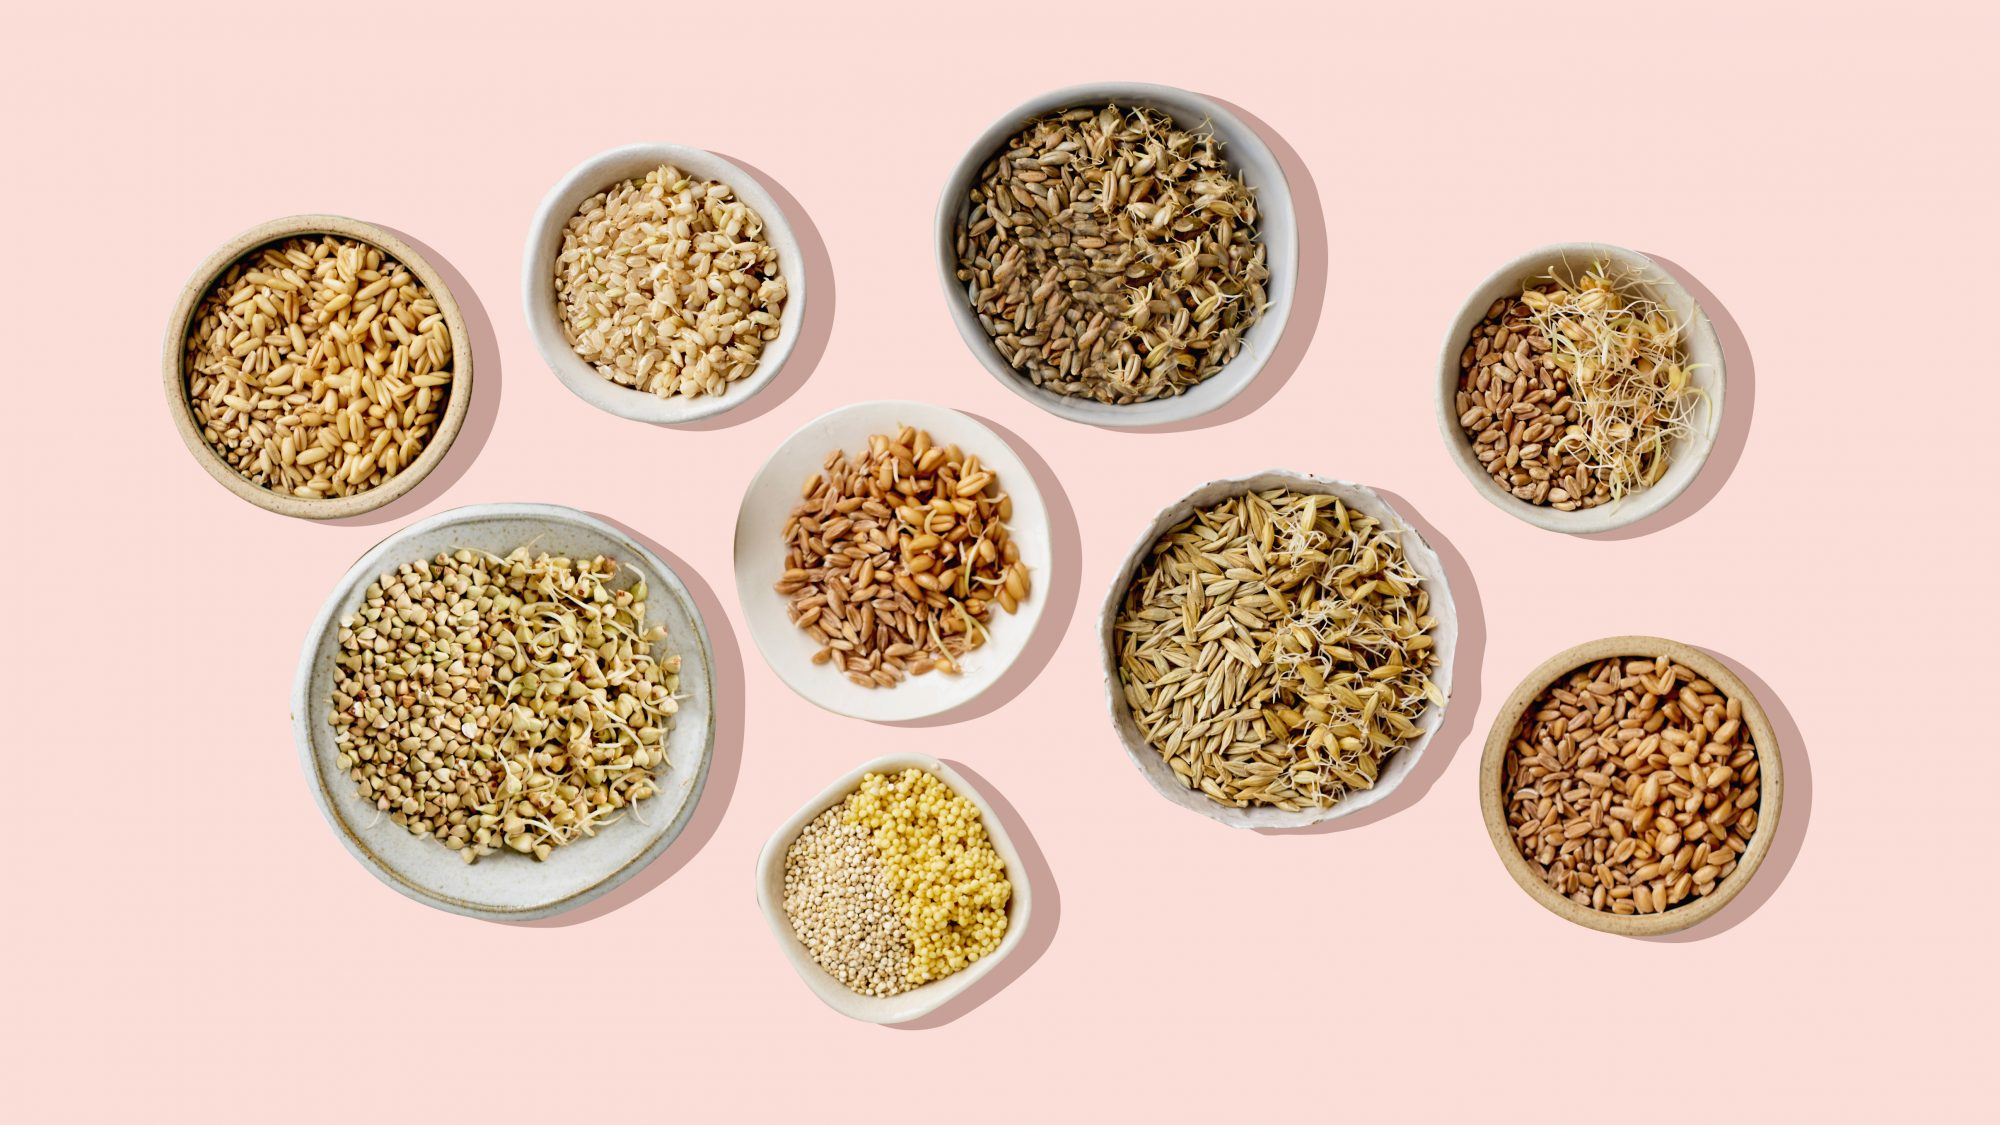 We All Know Whole Grains Are Good for You, but These 11 Are the